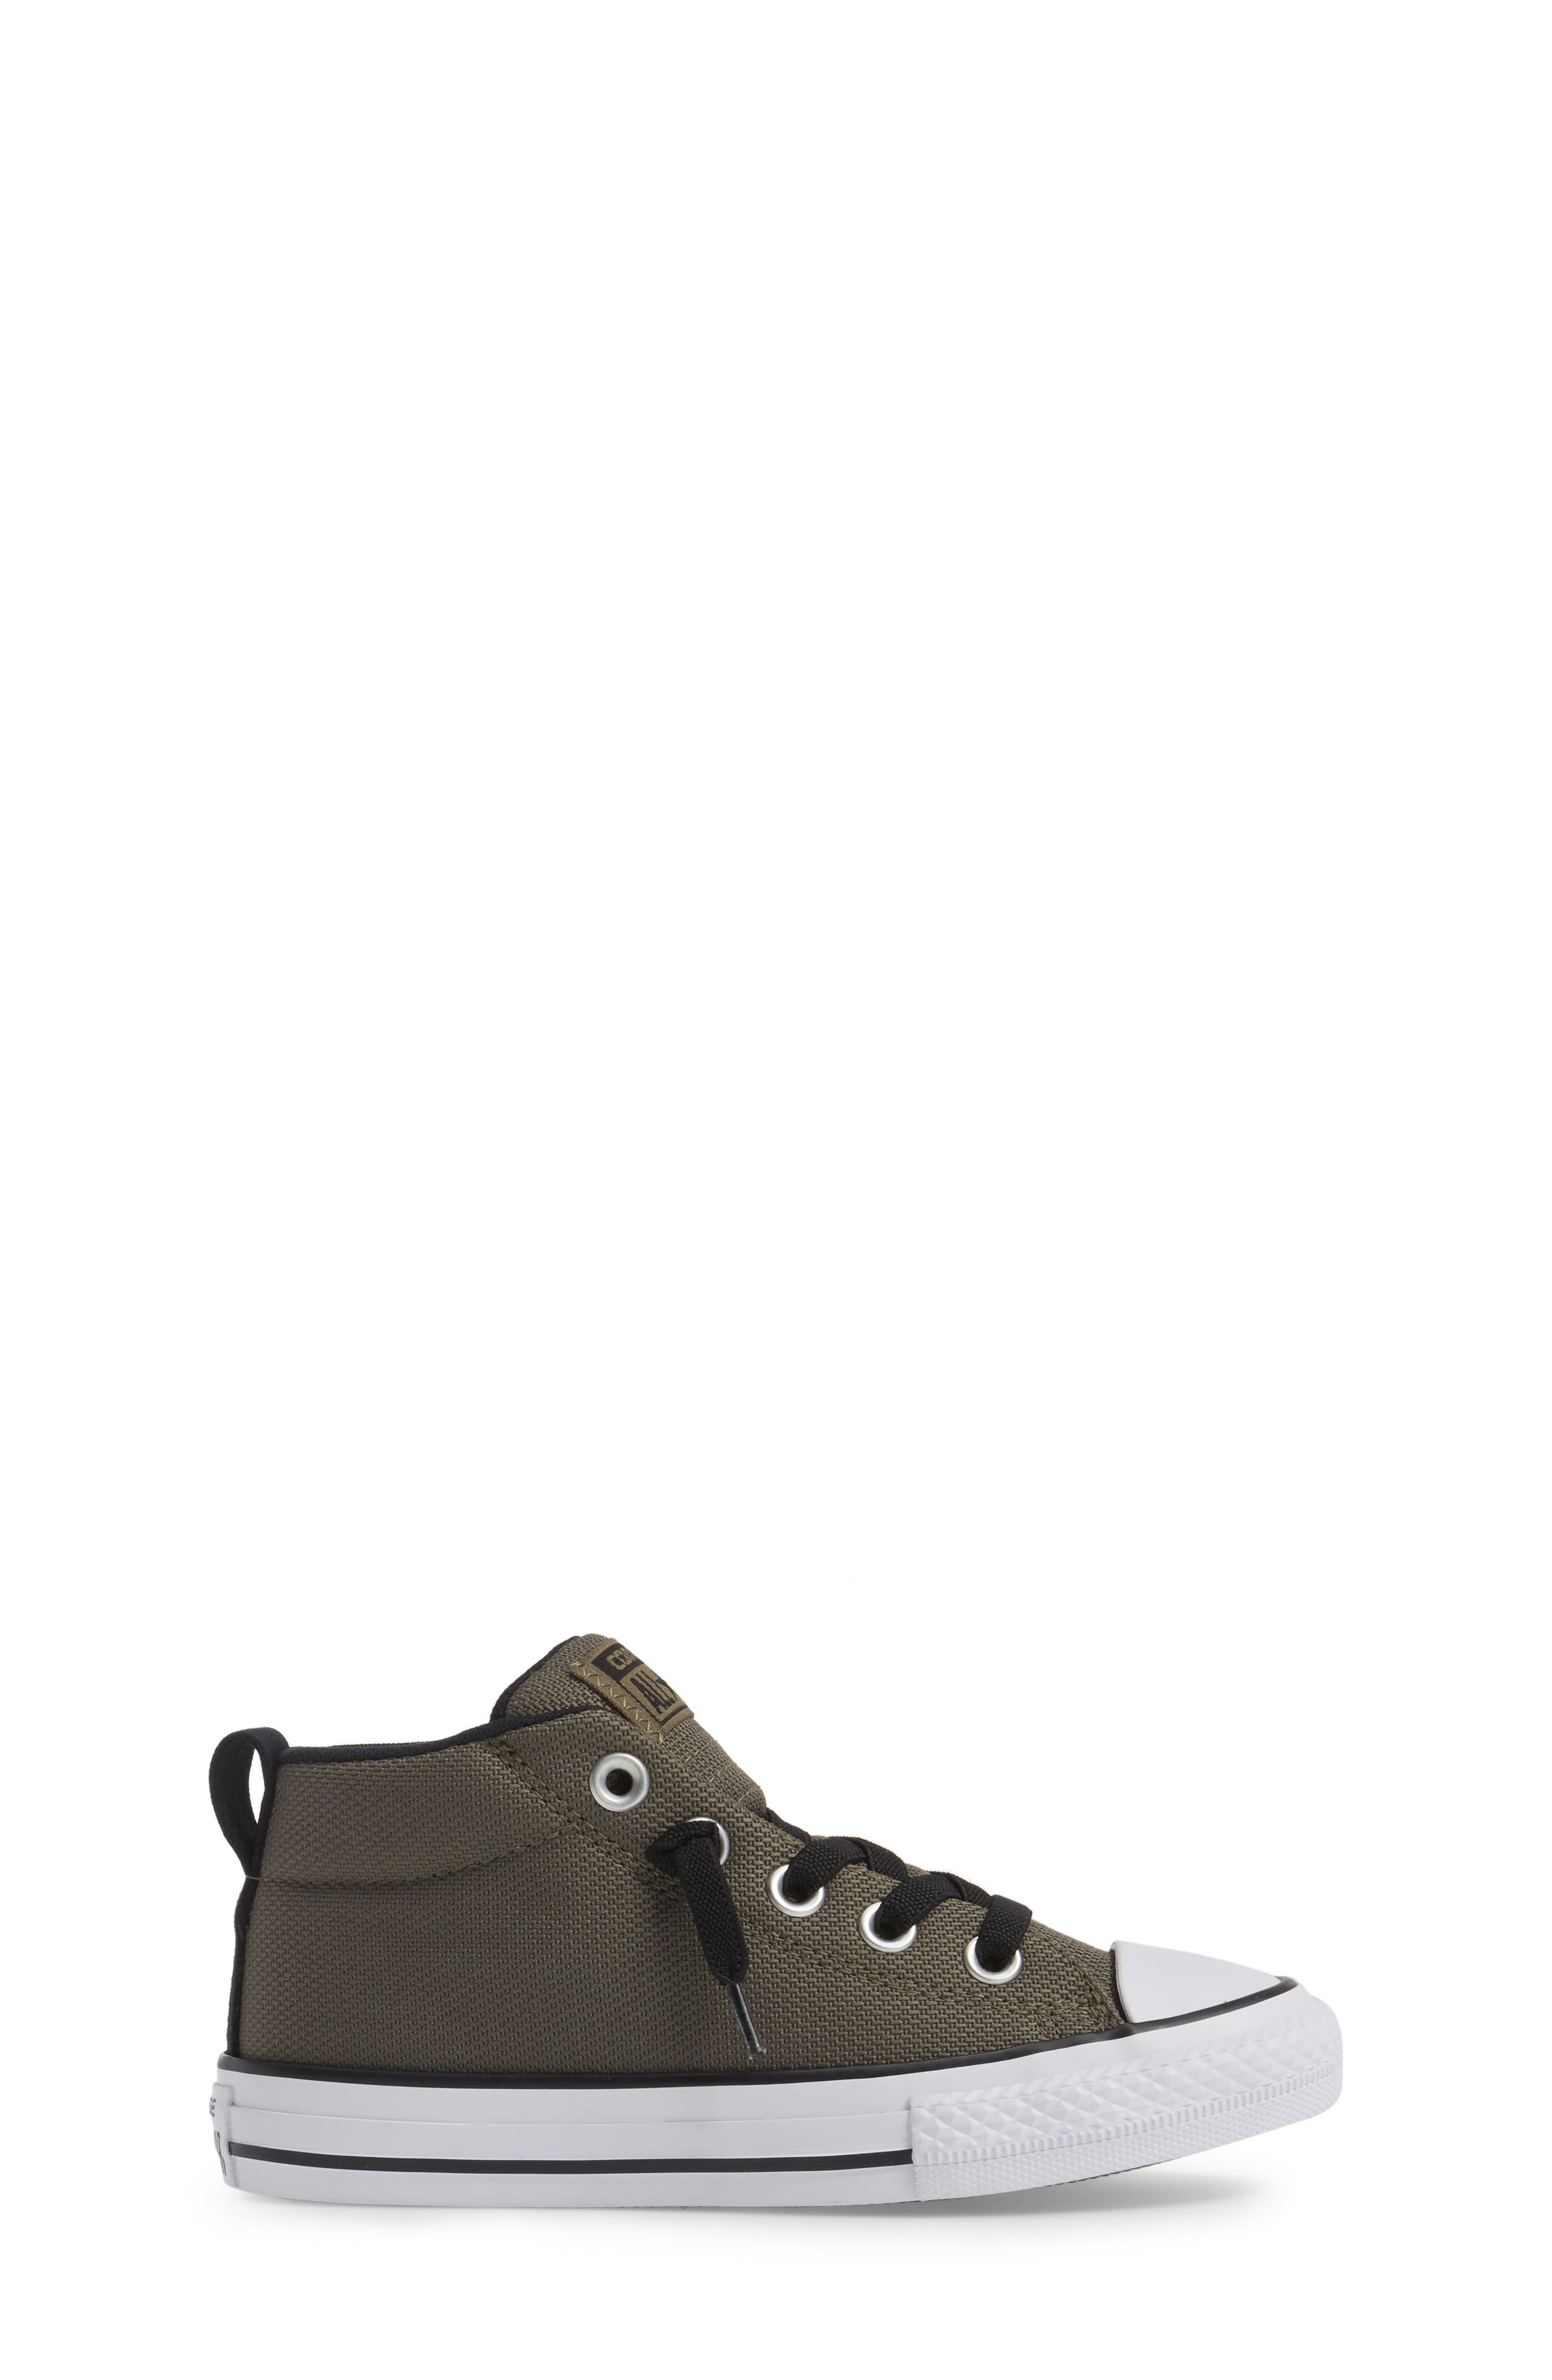 Chuck Taylor<sup>®</sup> All Star<sup>®</sup> Basket Weave Street Mid Sneaker,                             Alternate thumbnail 3, color,                             342